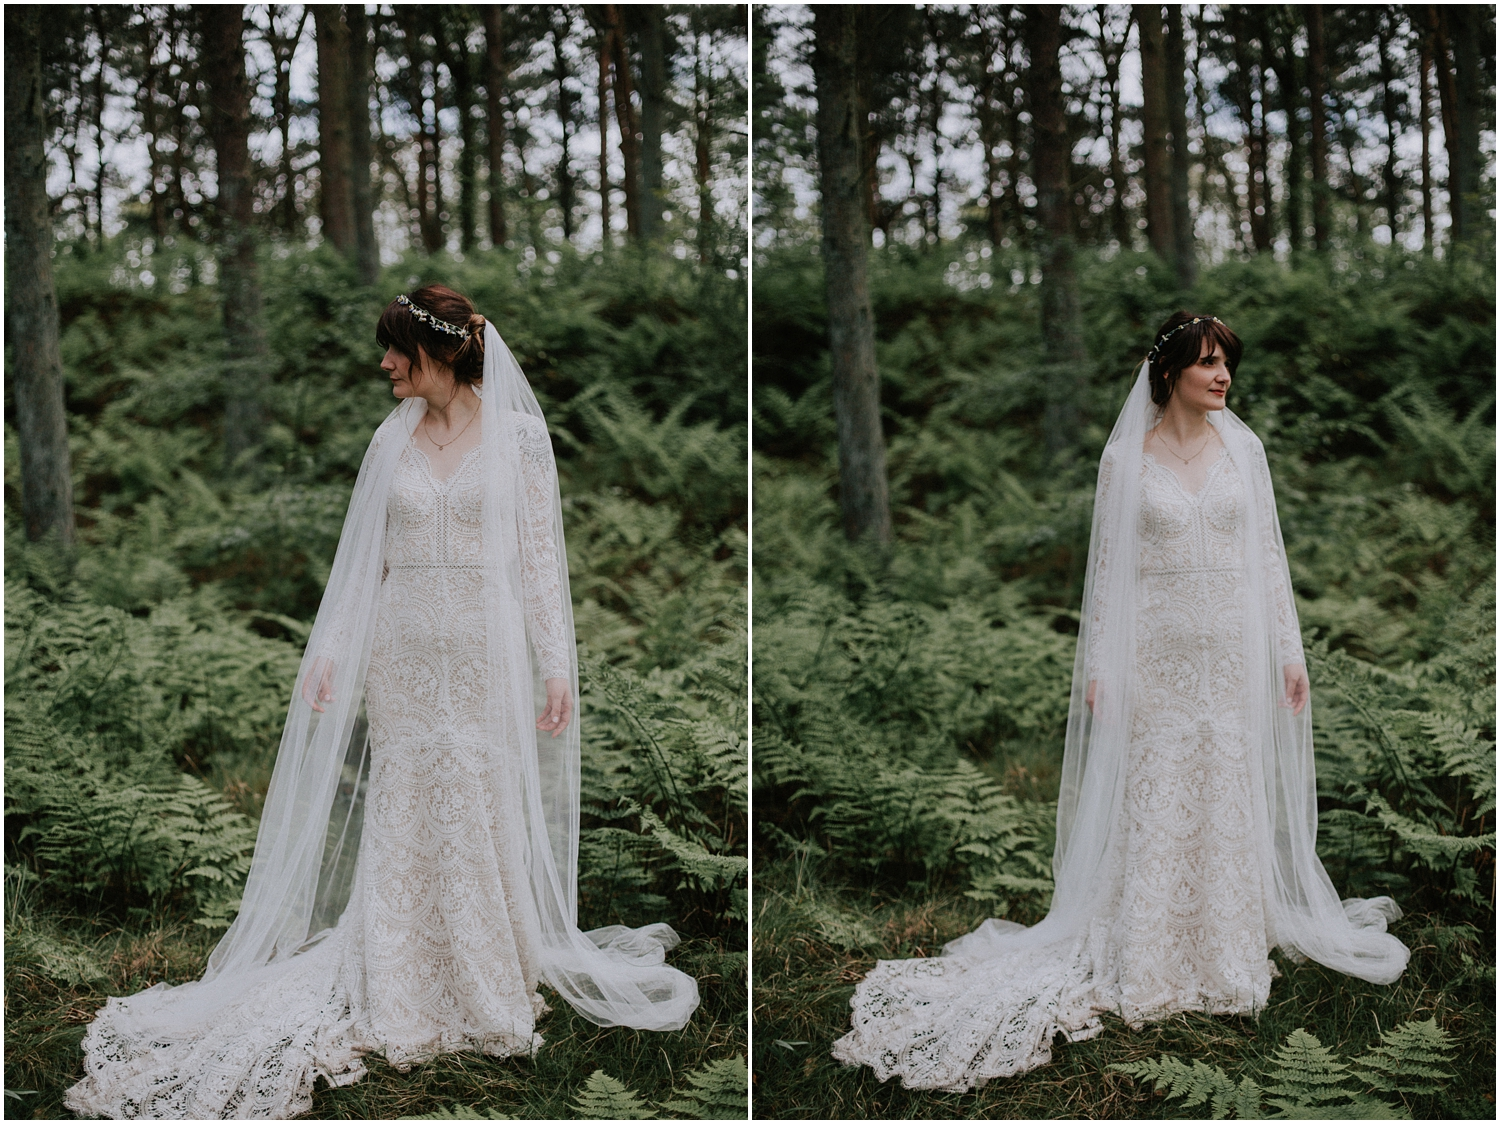 The creative bridal portraits in the wild forest